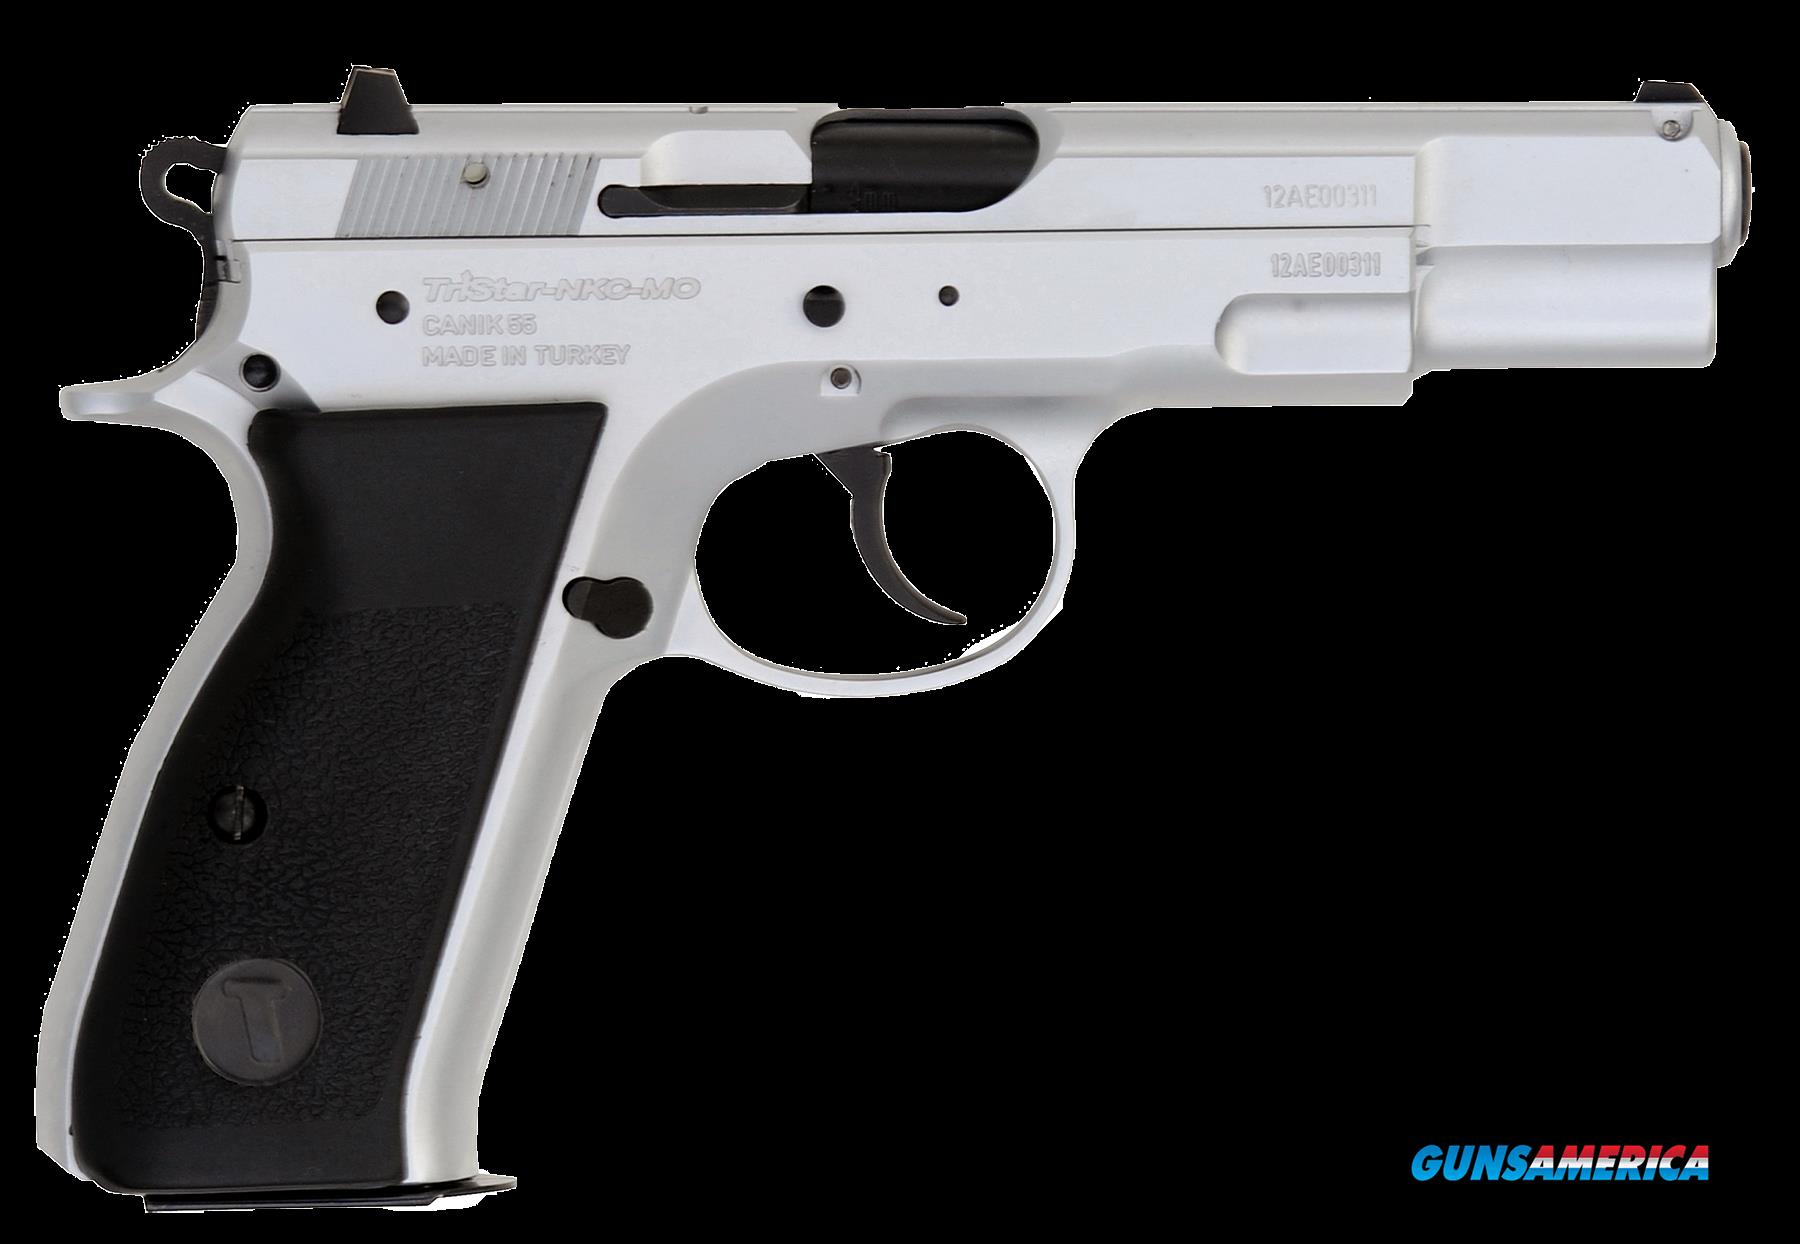 "TriStar 85070 S-120 Steel Single/Double 9mm Luger 4.7"" 17+1 Black Polymer Grip Chromed  Guns > Pistols > TU Misc Pistols"